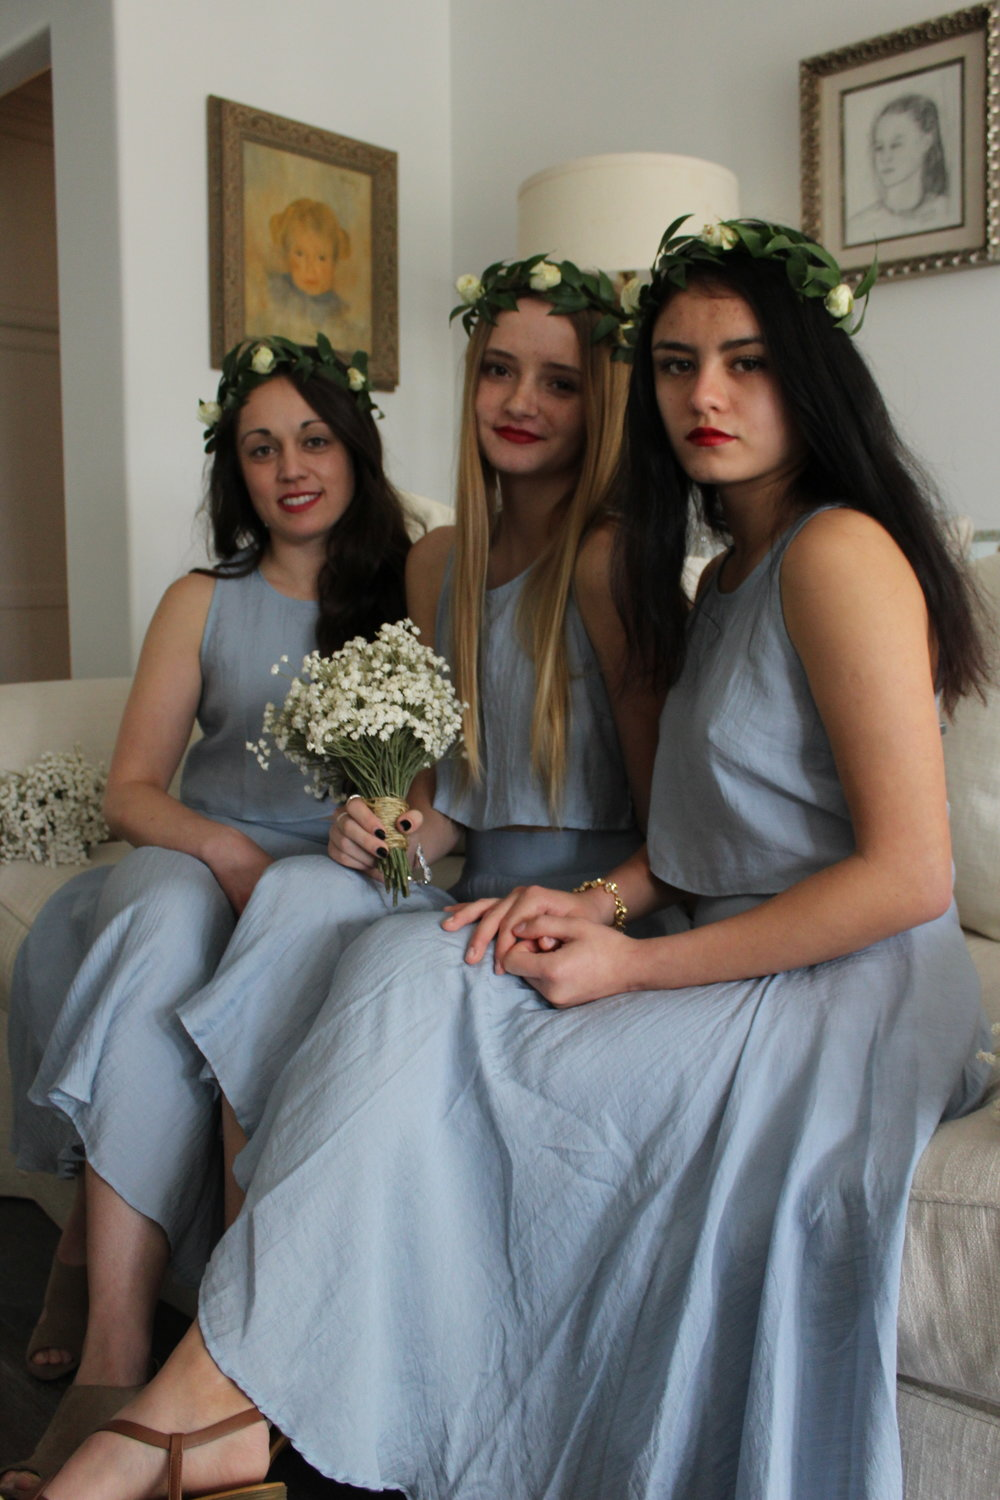 Au & CO. CUstom Bridal crop top and skirt baby blue bridesmaids.JPG